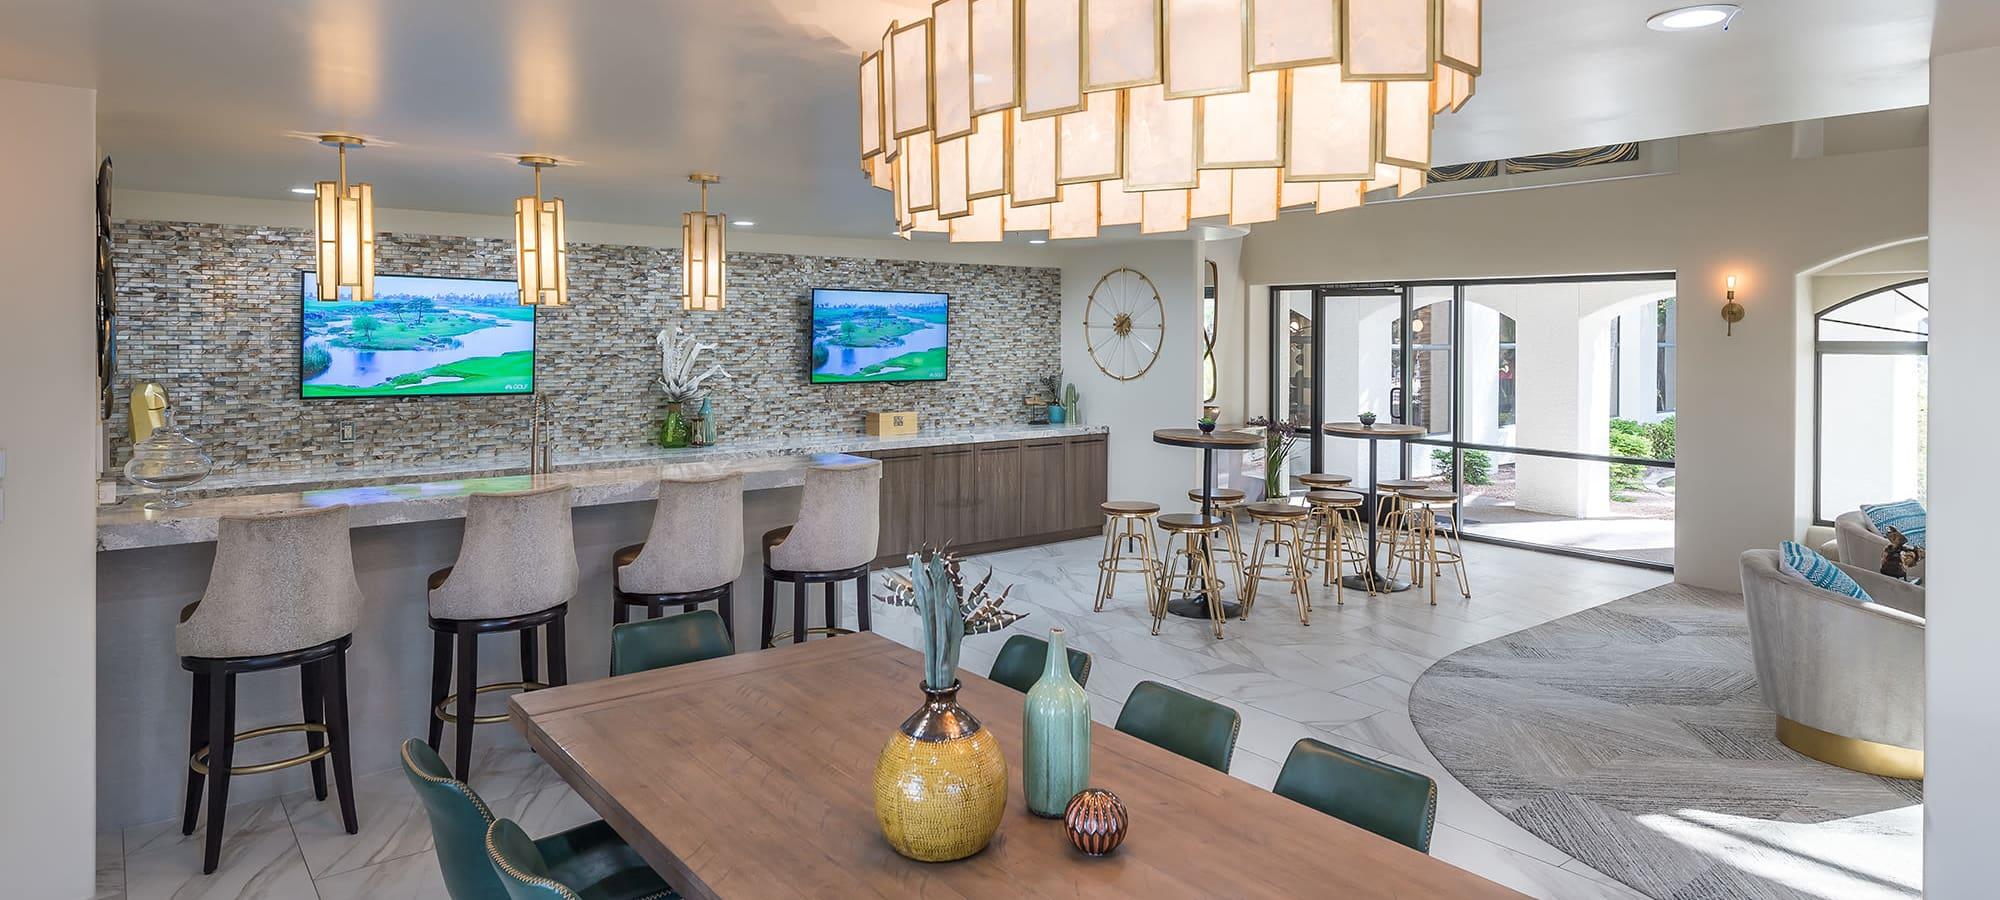 Luxury clubhouse with TVs and bar seating at San Palmas in Chandler, Arizona